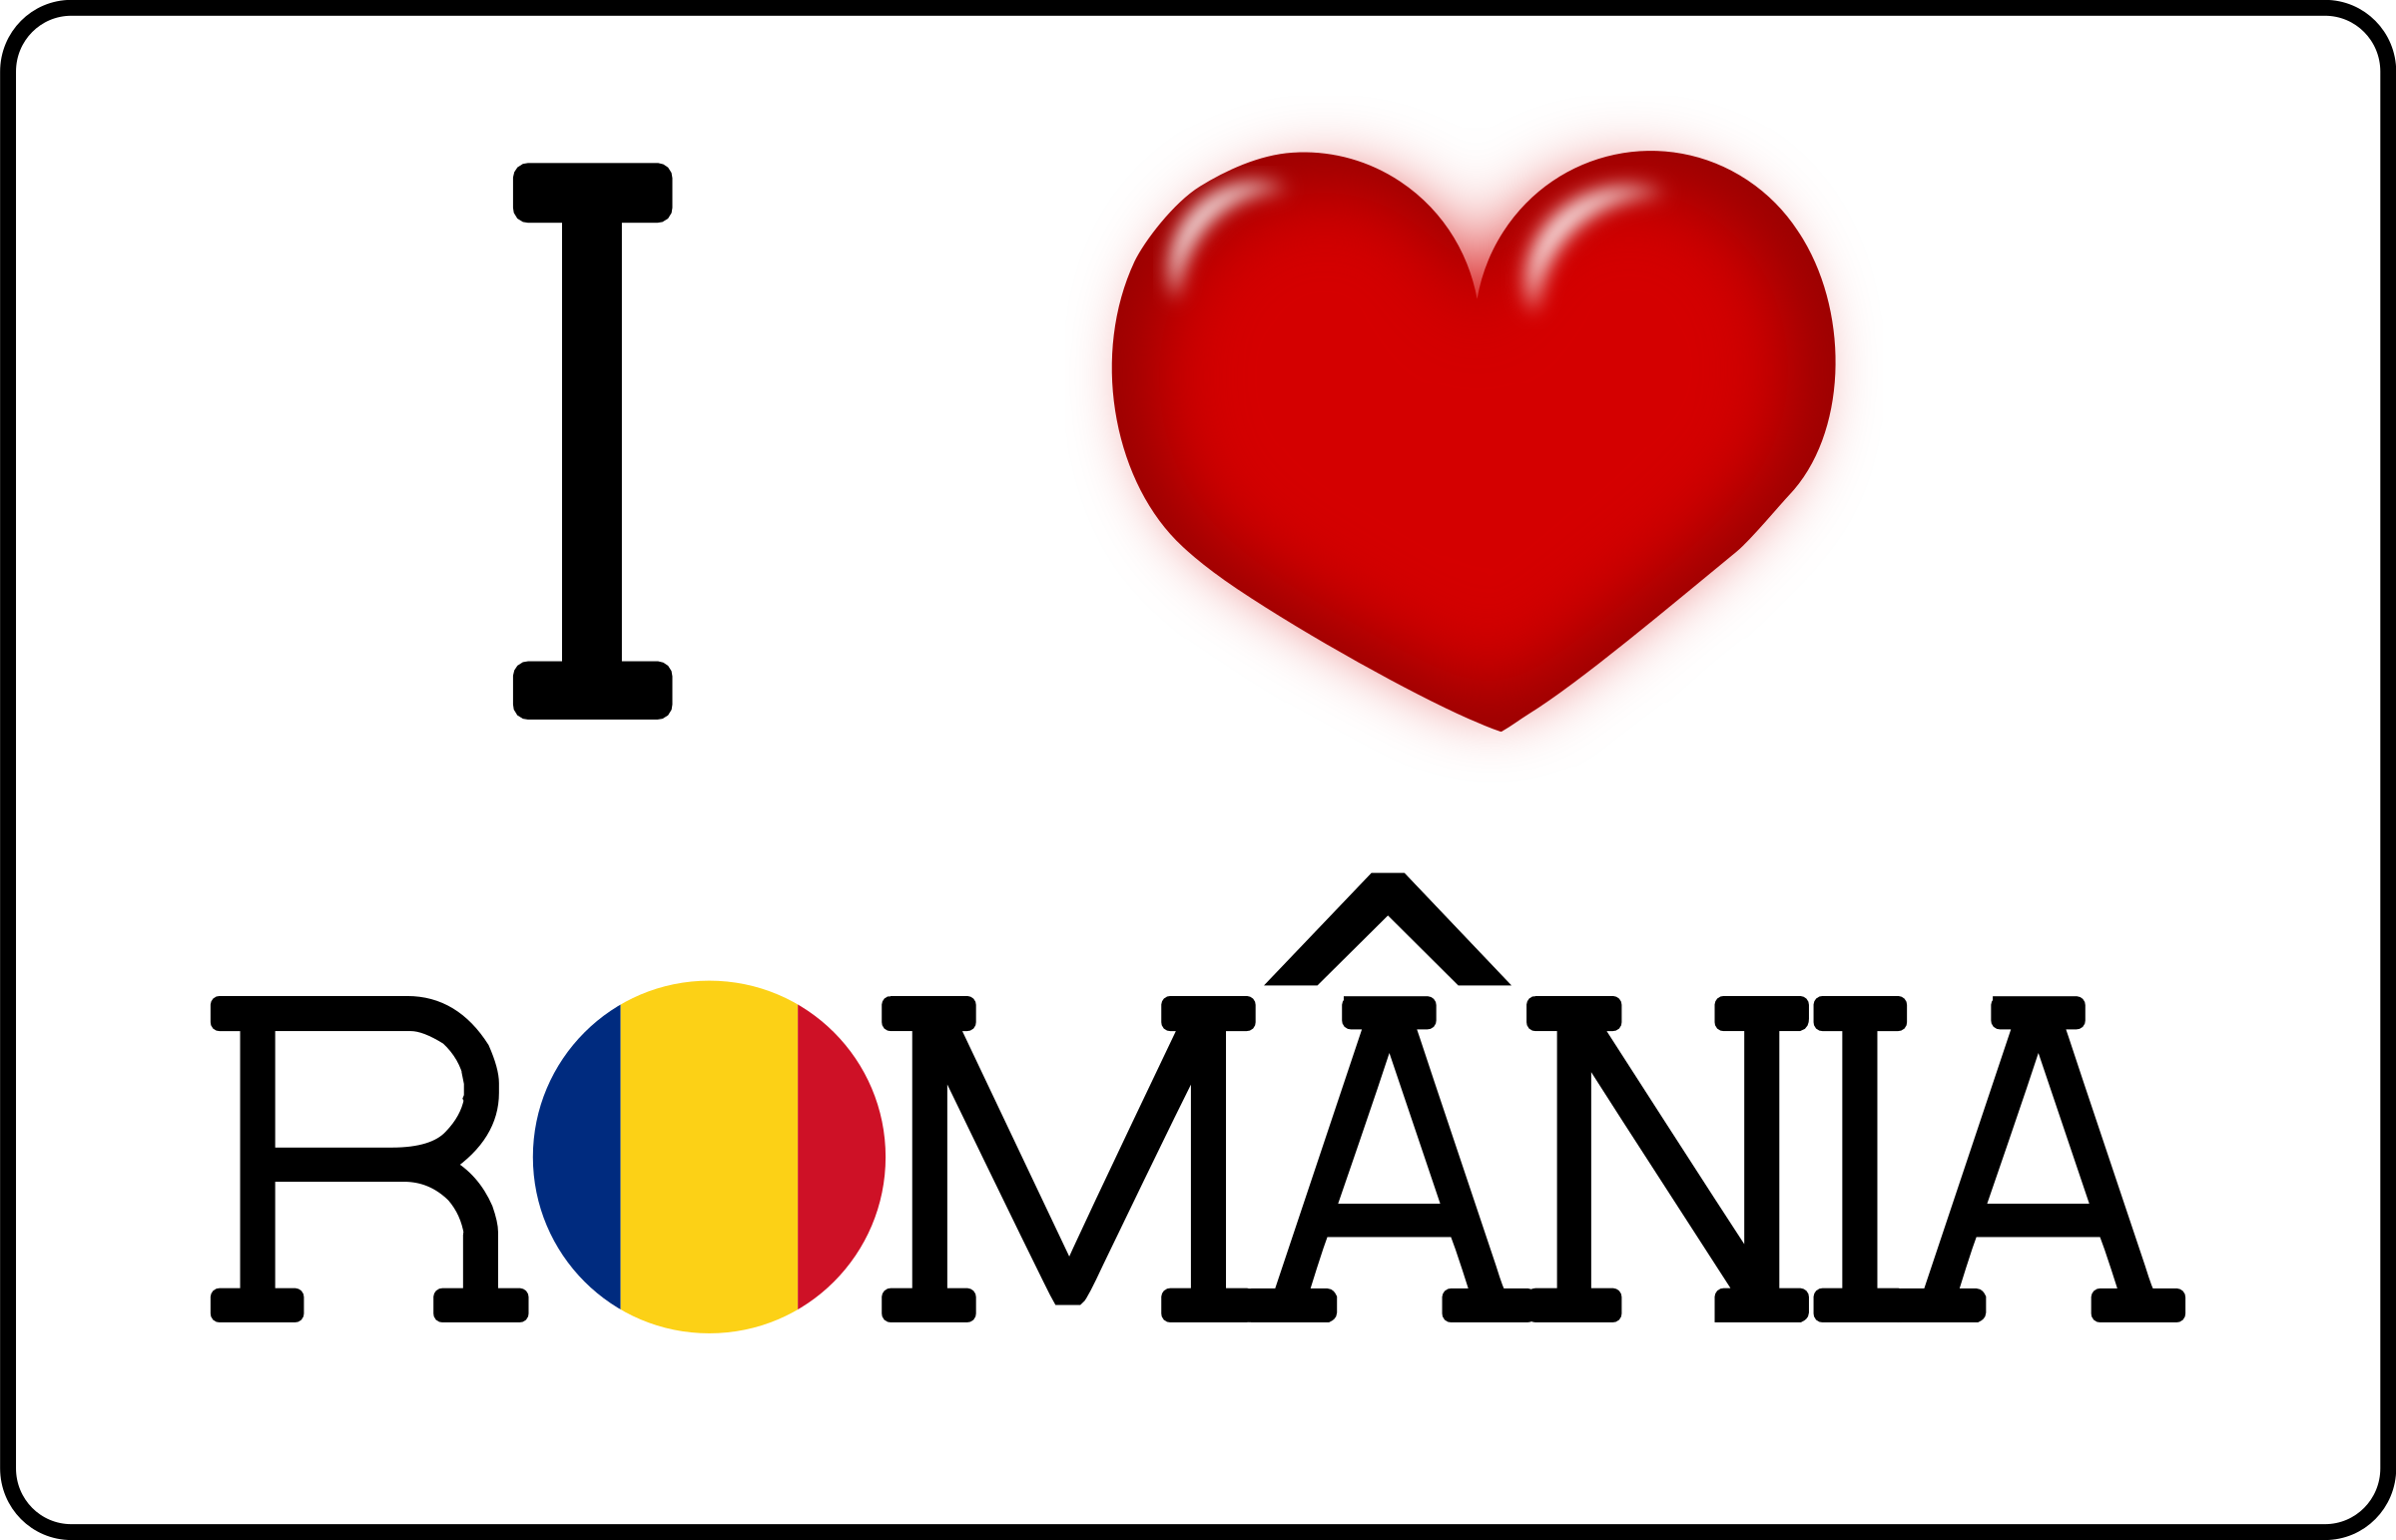 I LOVE Romania by SOlvera